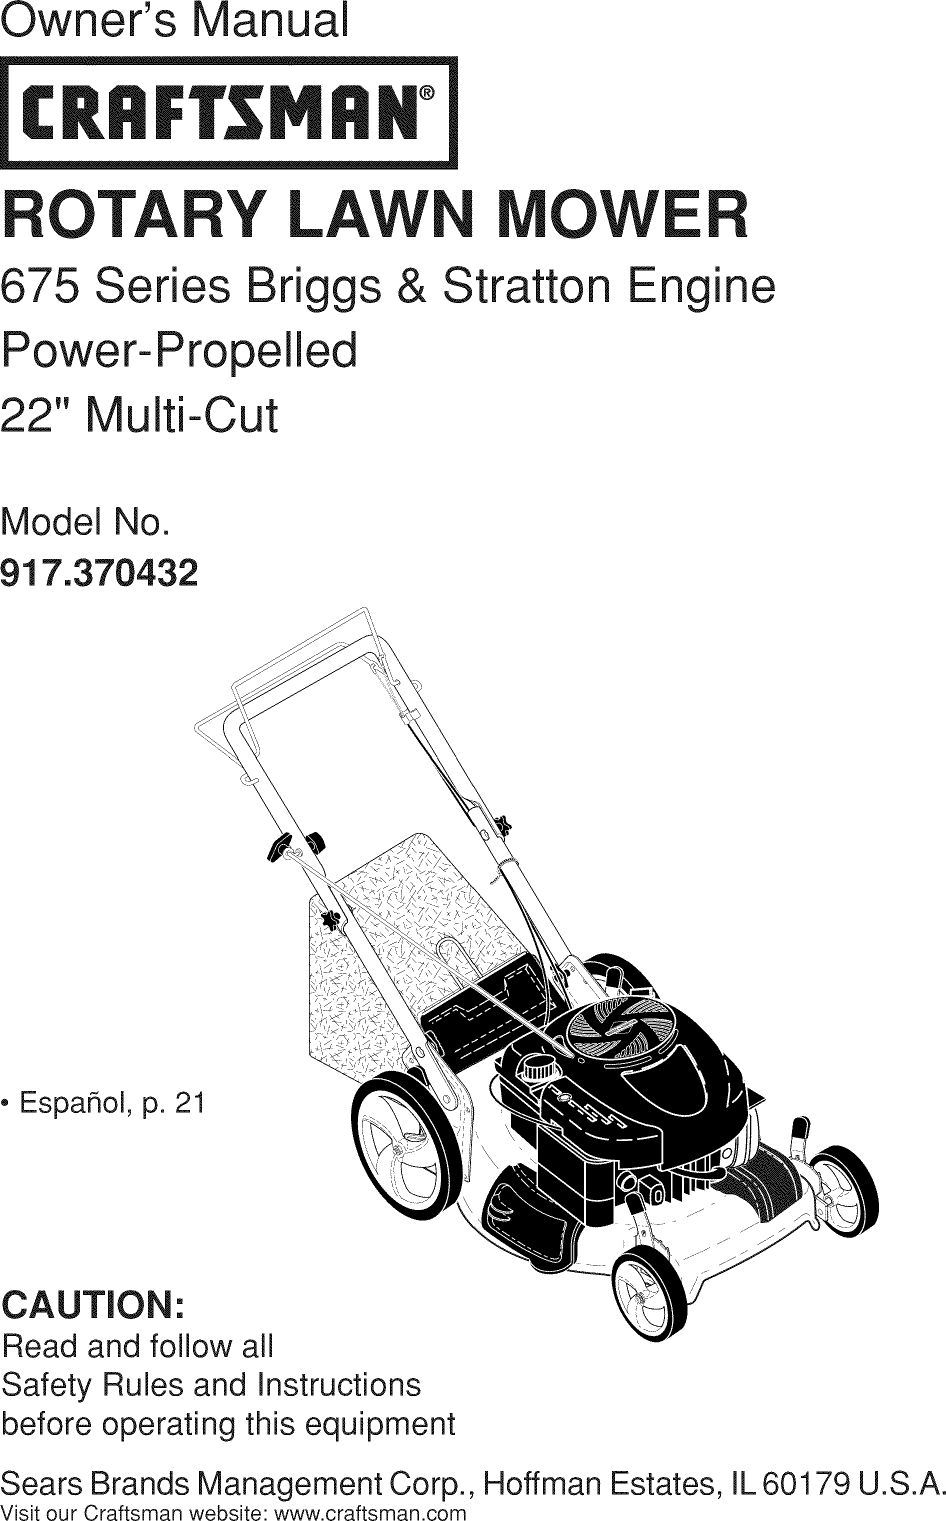 Craftsman 917370432 User Manual MOWER Manuals And Guides